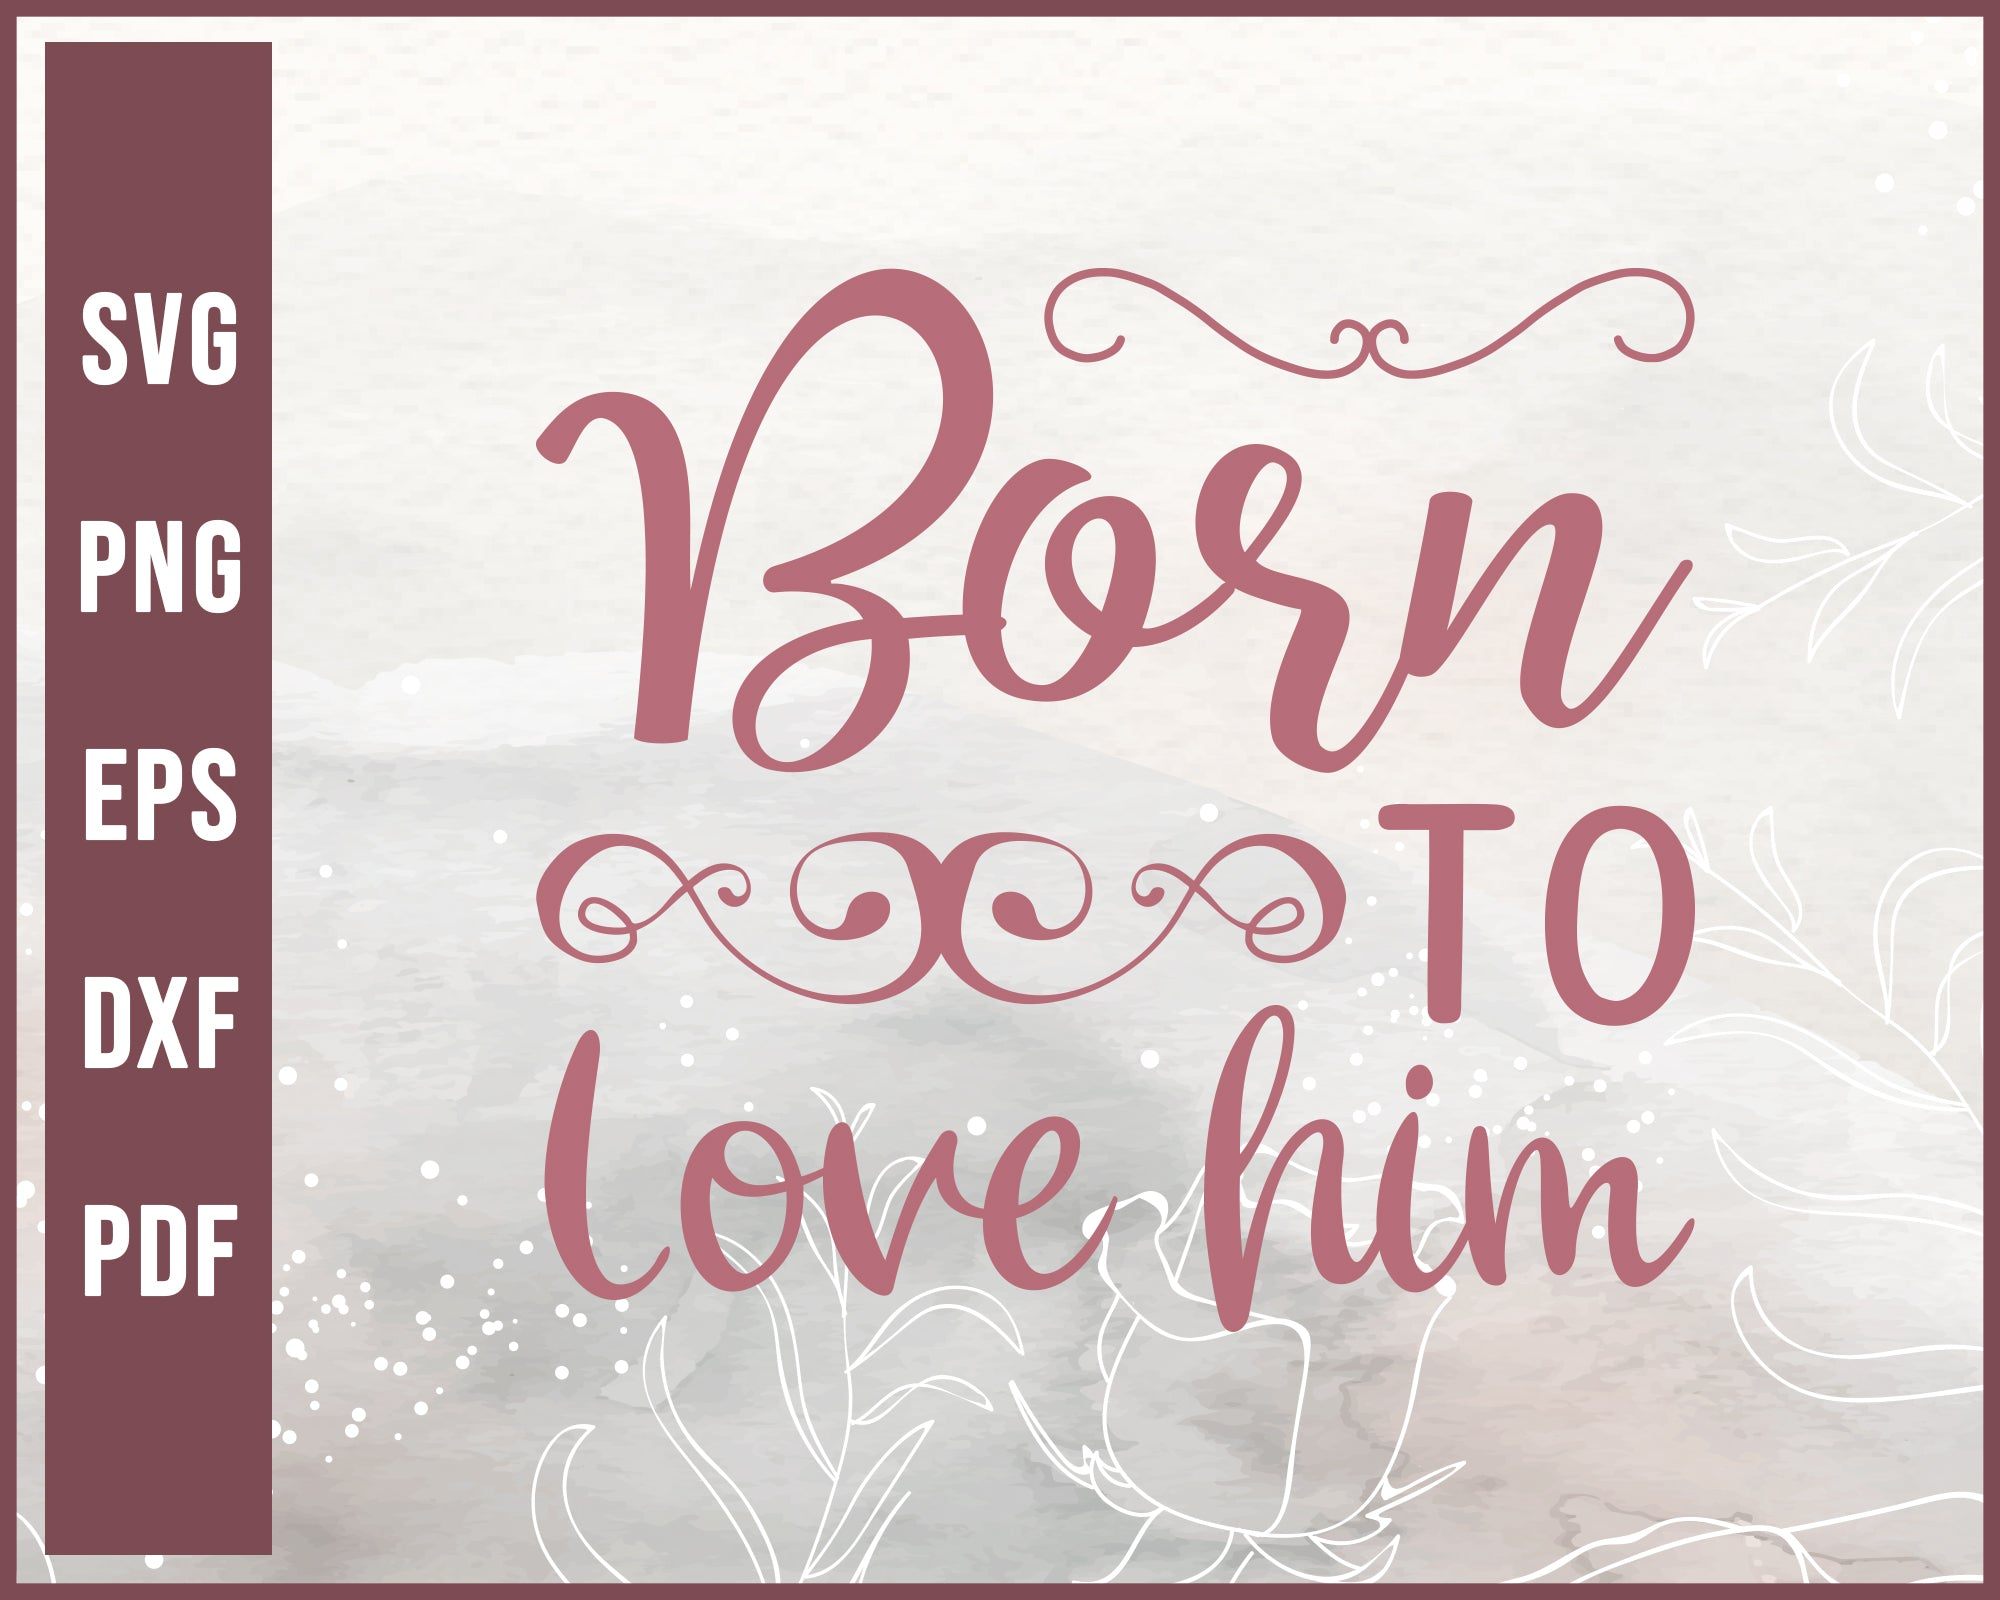 Born To Love Him Wedding svg Designs For Cricut Silhouette And eps png dxf Printable Files